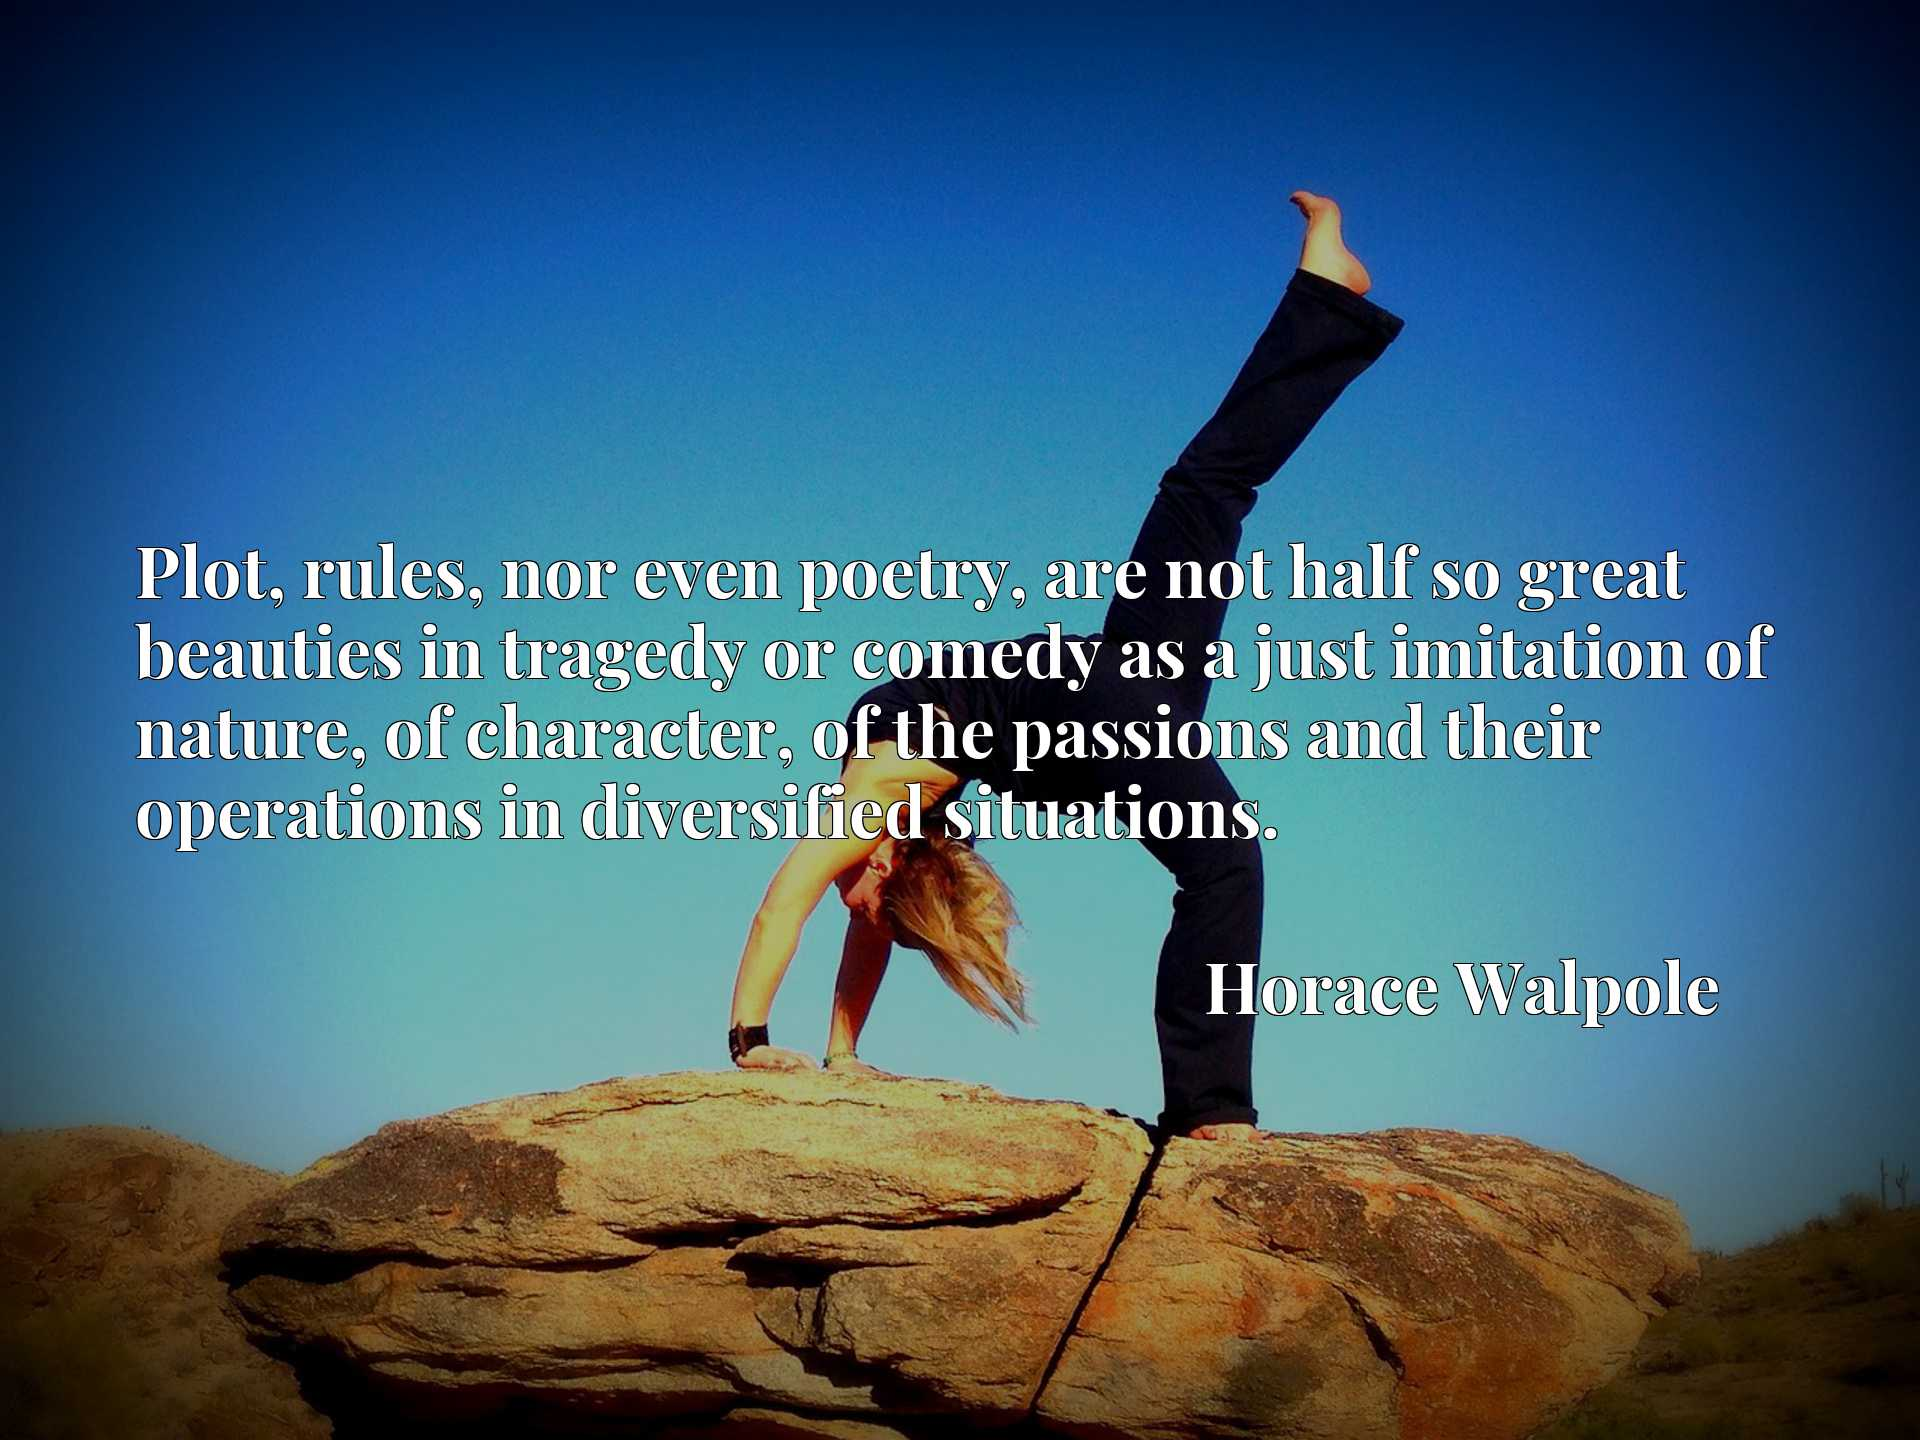 Quote Picture :Plot, rules, nor even poetry, are not half so great beauties in tragedy or comedy as a just imitation of nature, of character, of the passions and their operations in diversified situations.